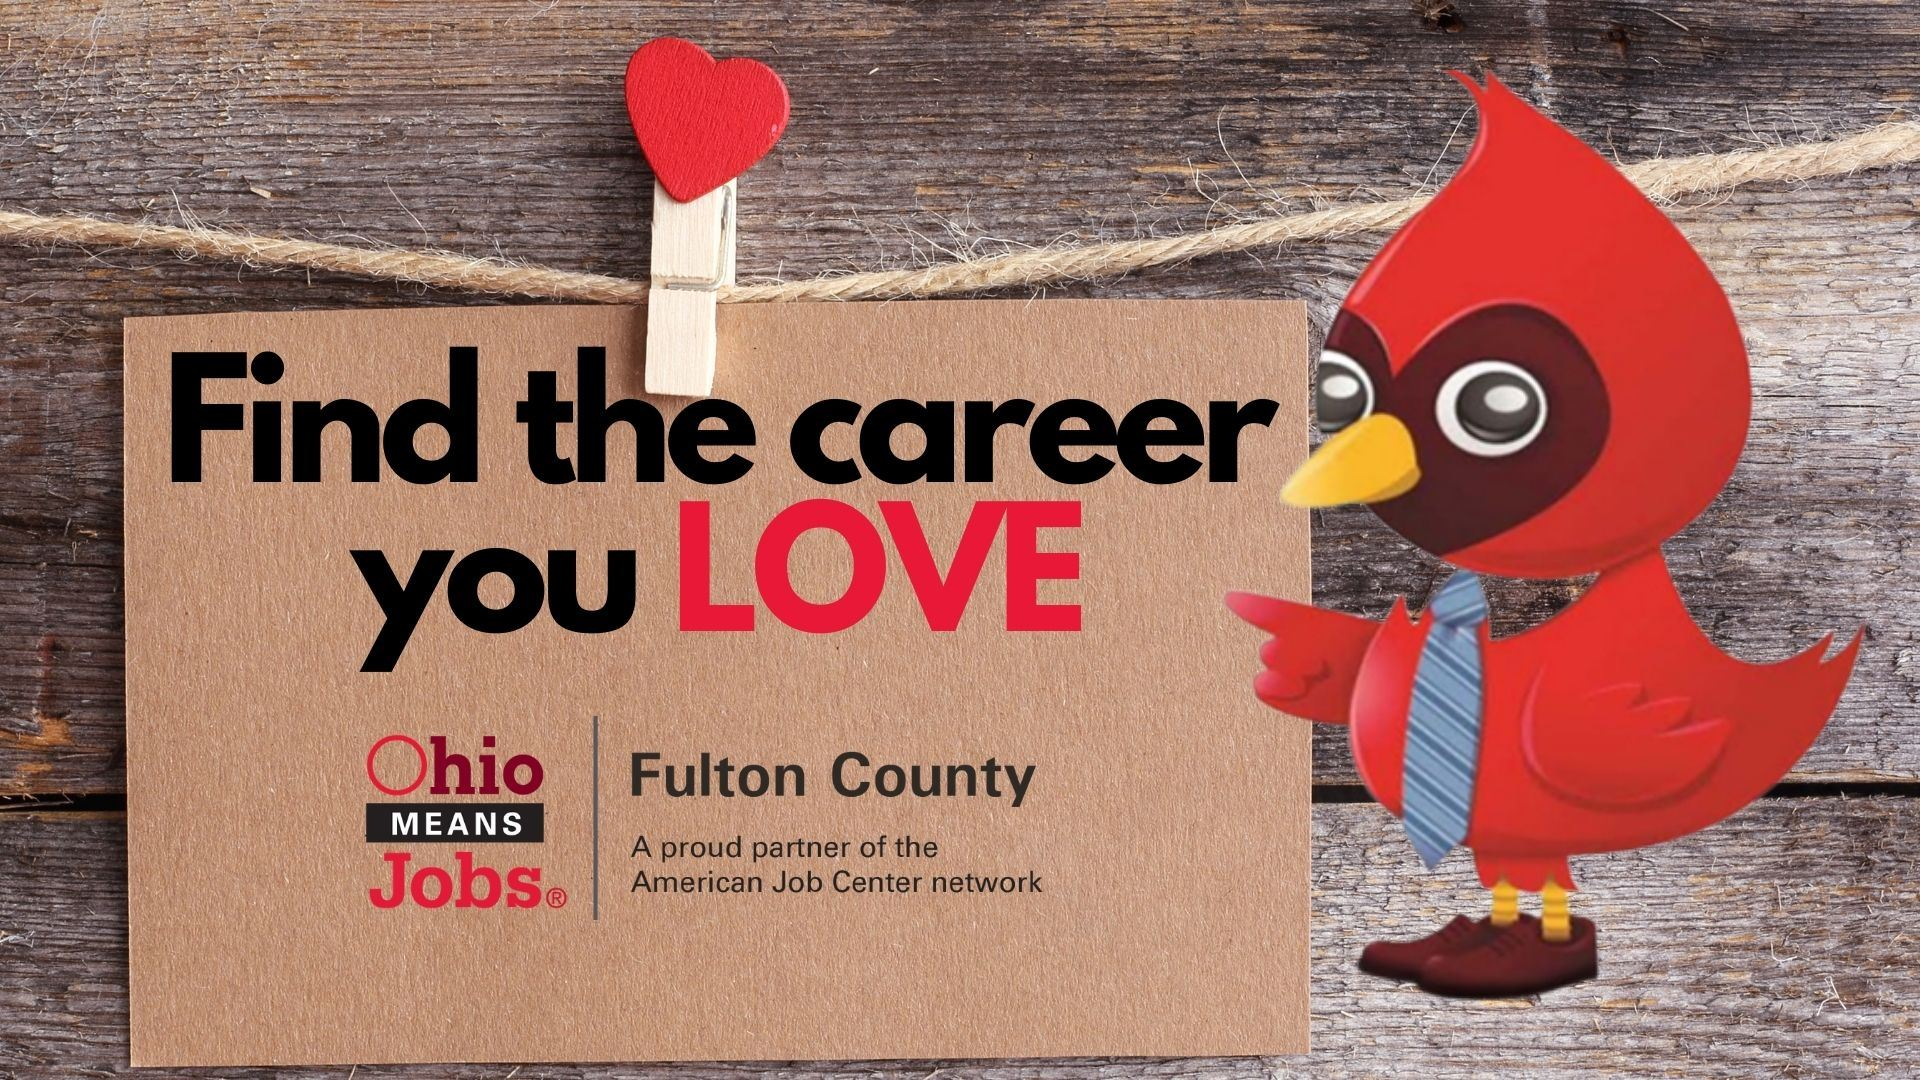 Find the Career you LOVE